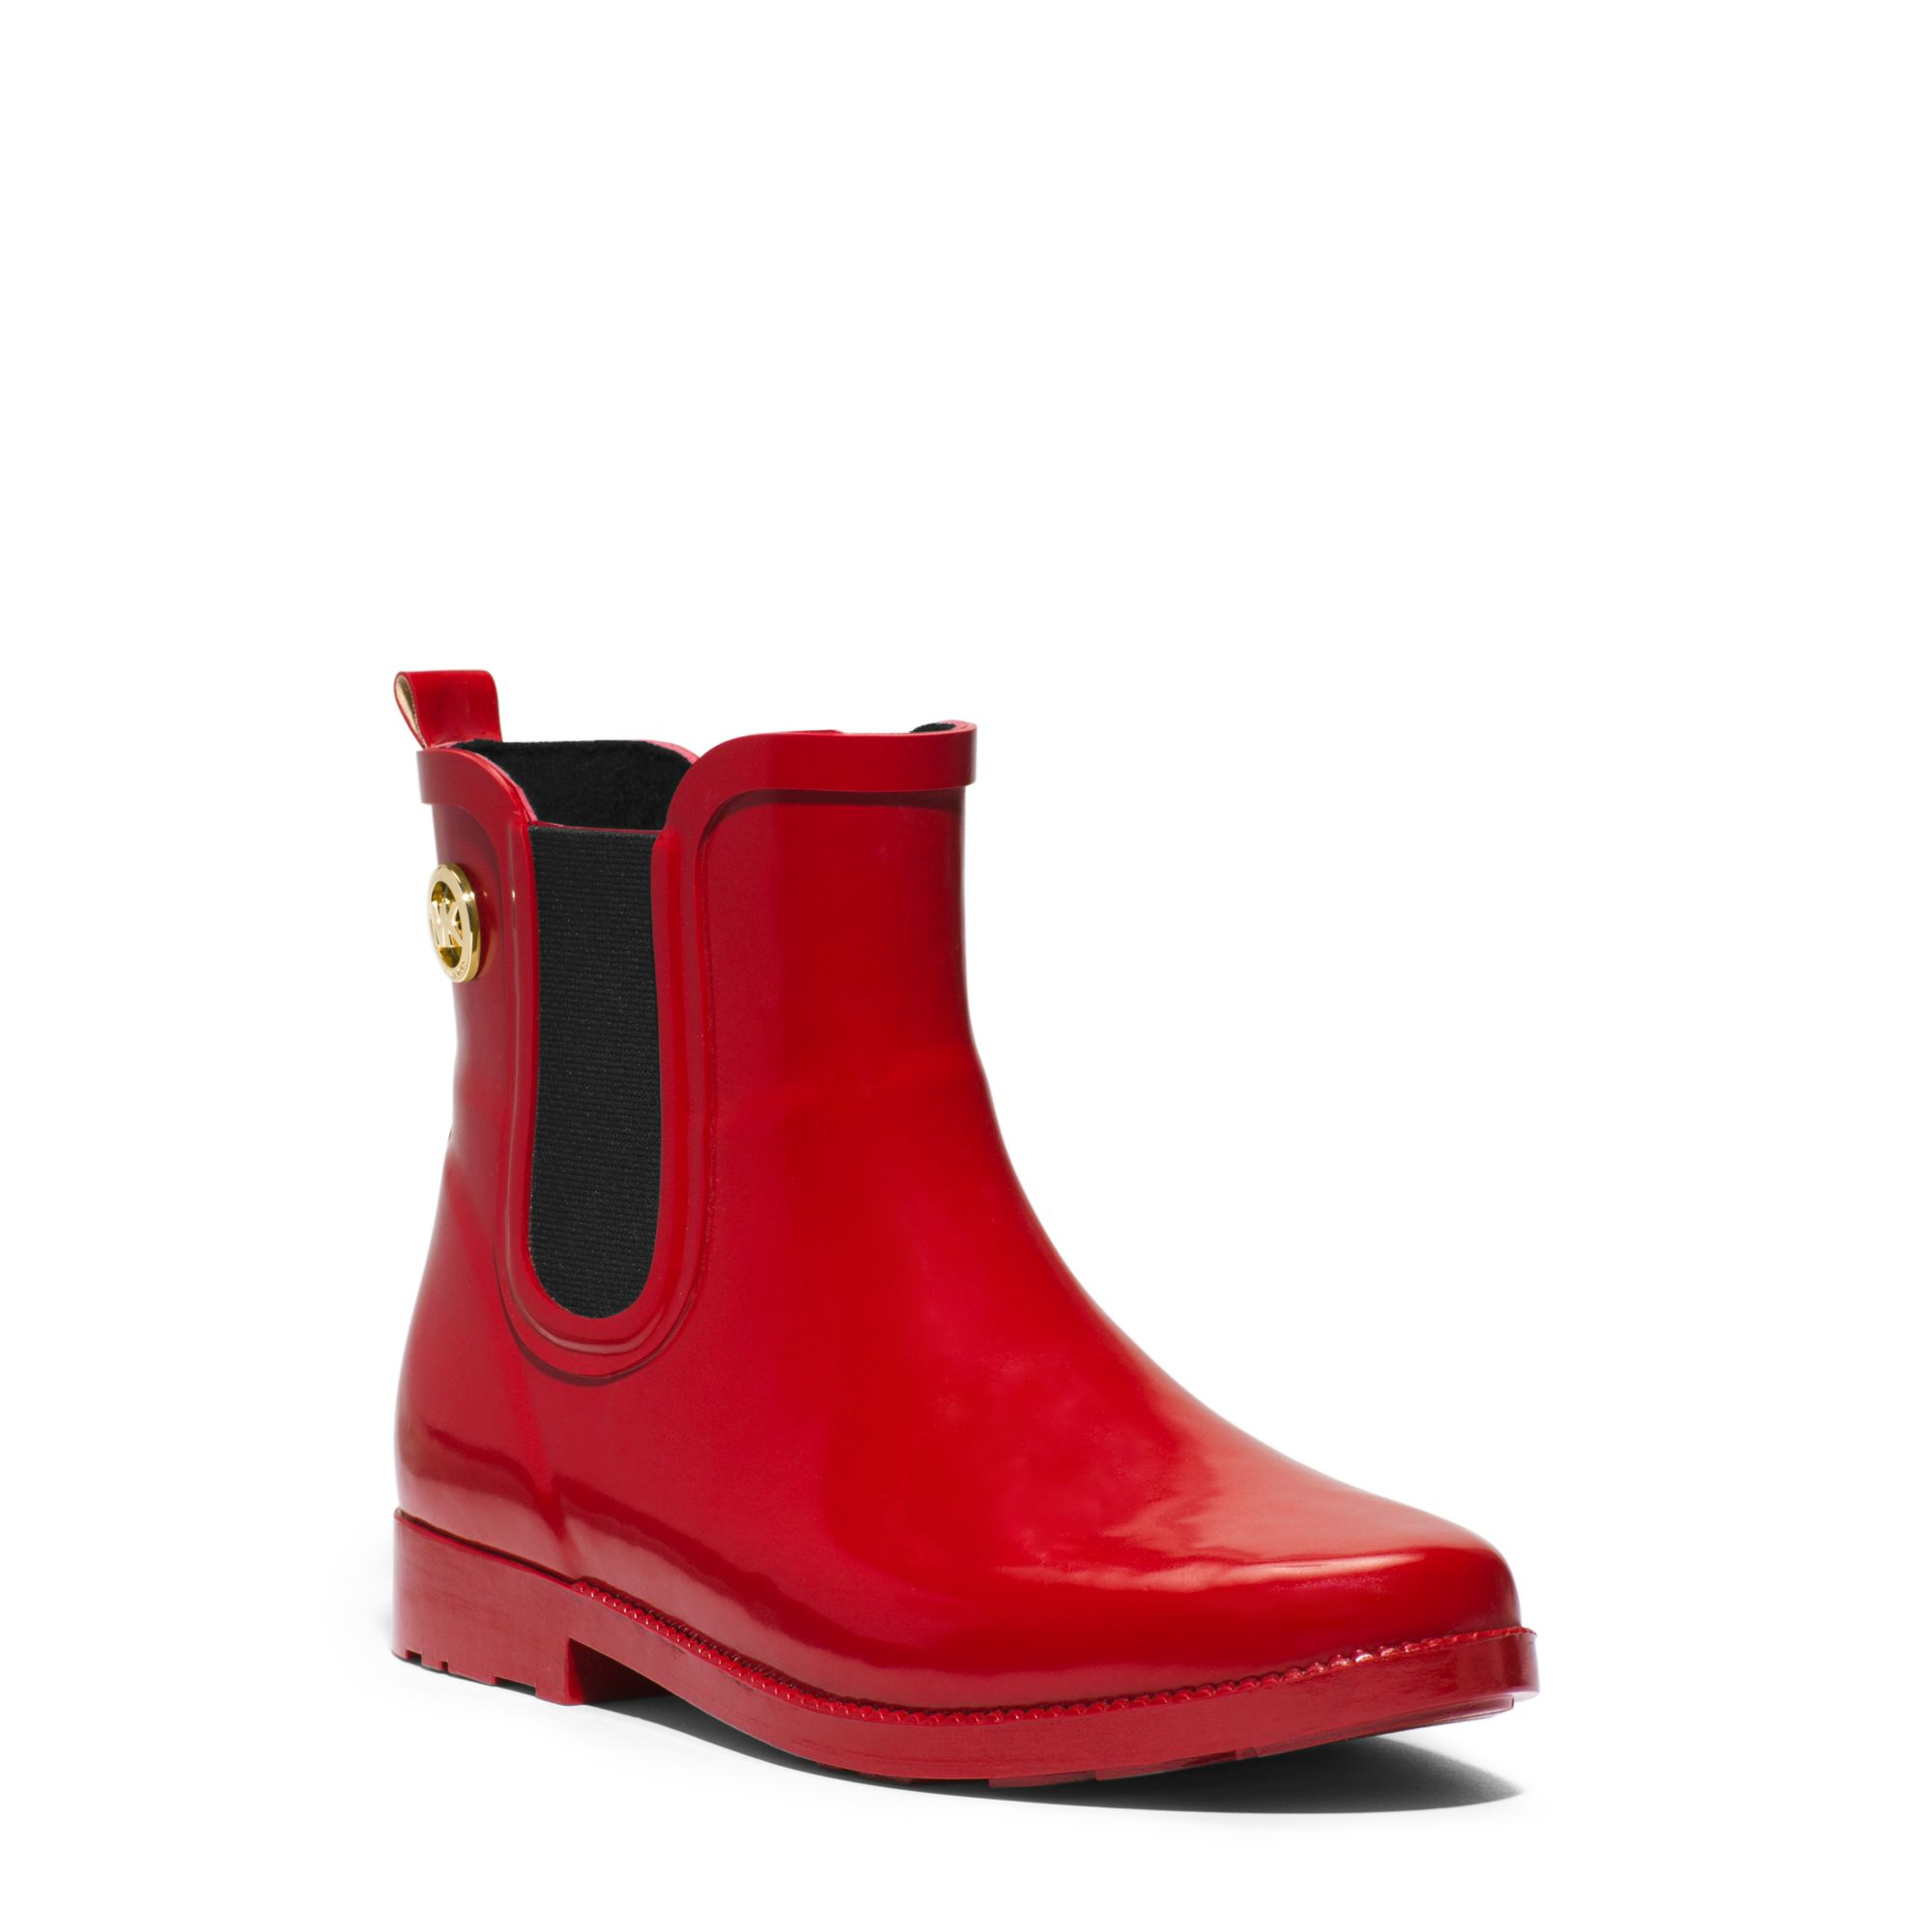 Michael kors Short Rubber Rain Boot in Red | Lyst